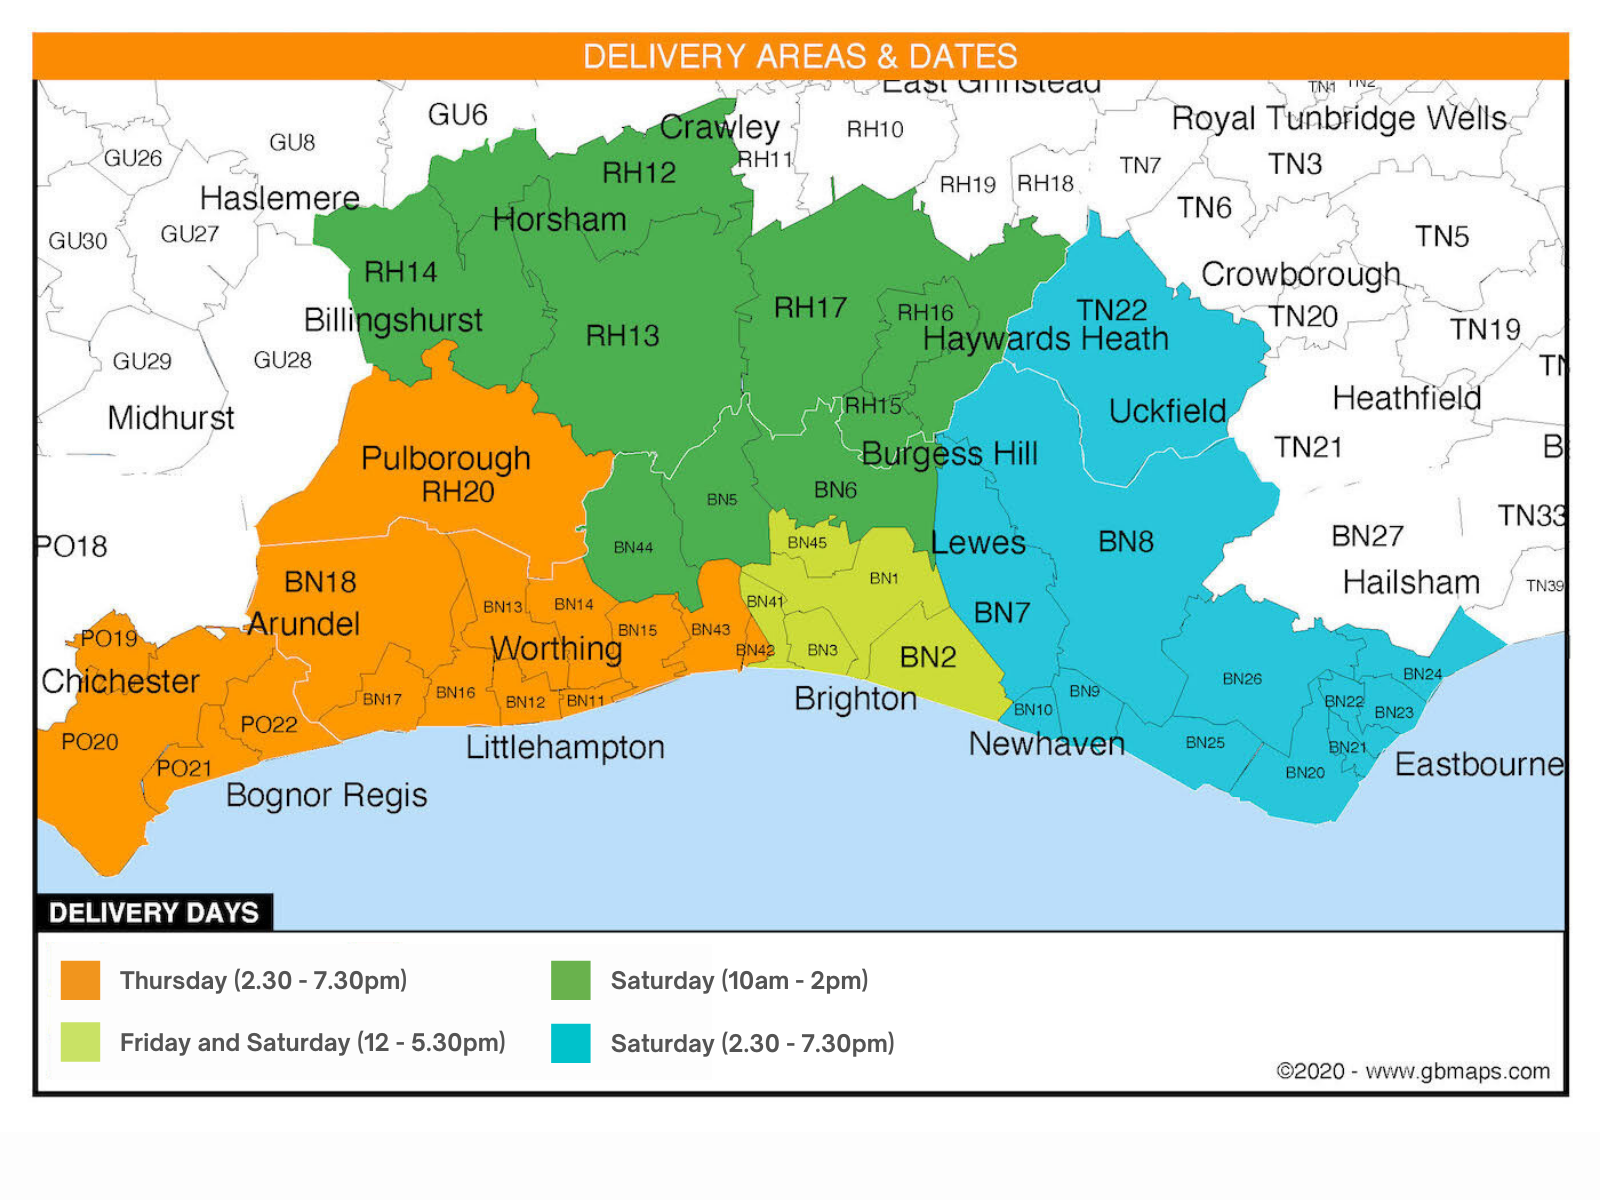 Map showing delivery days in Sussex